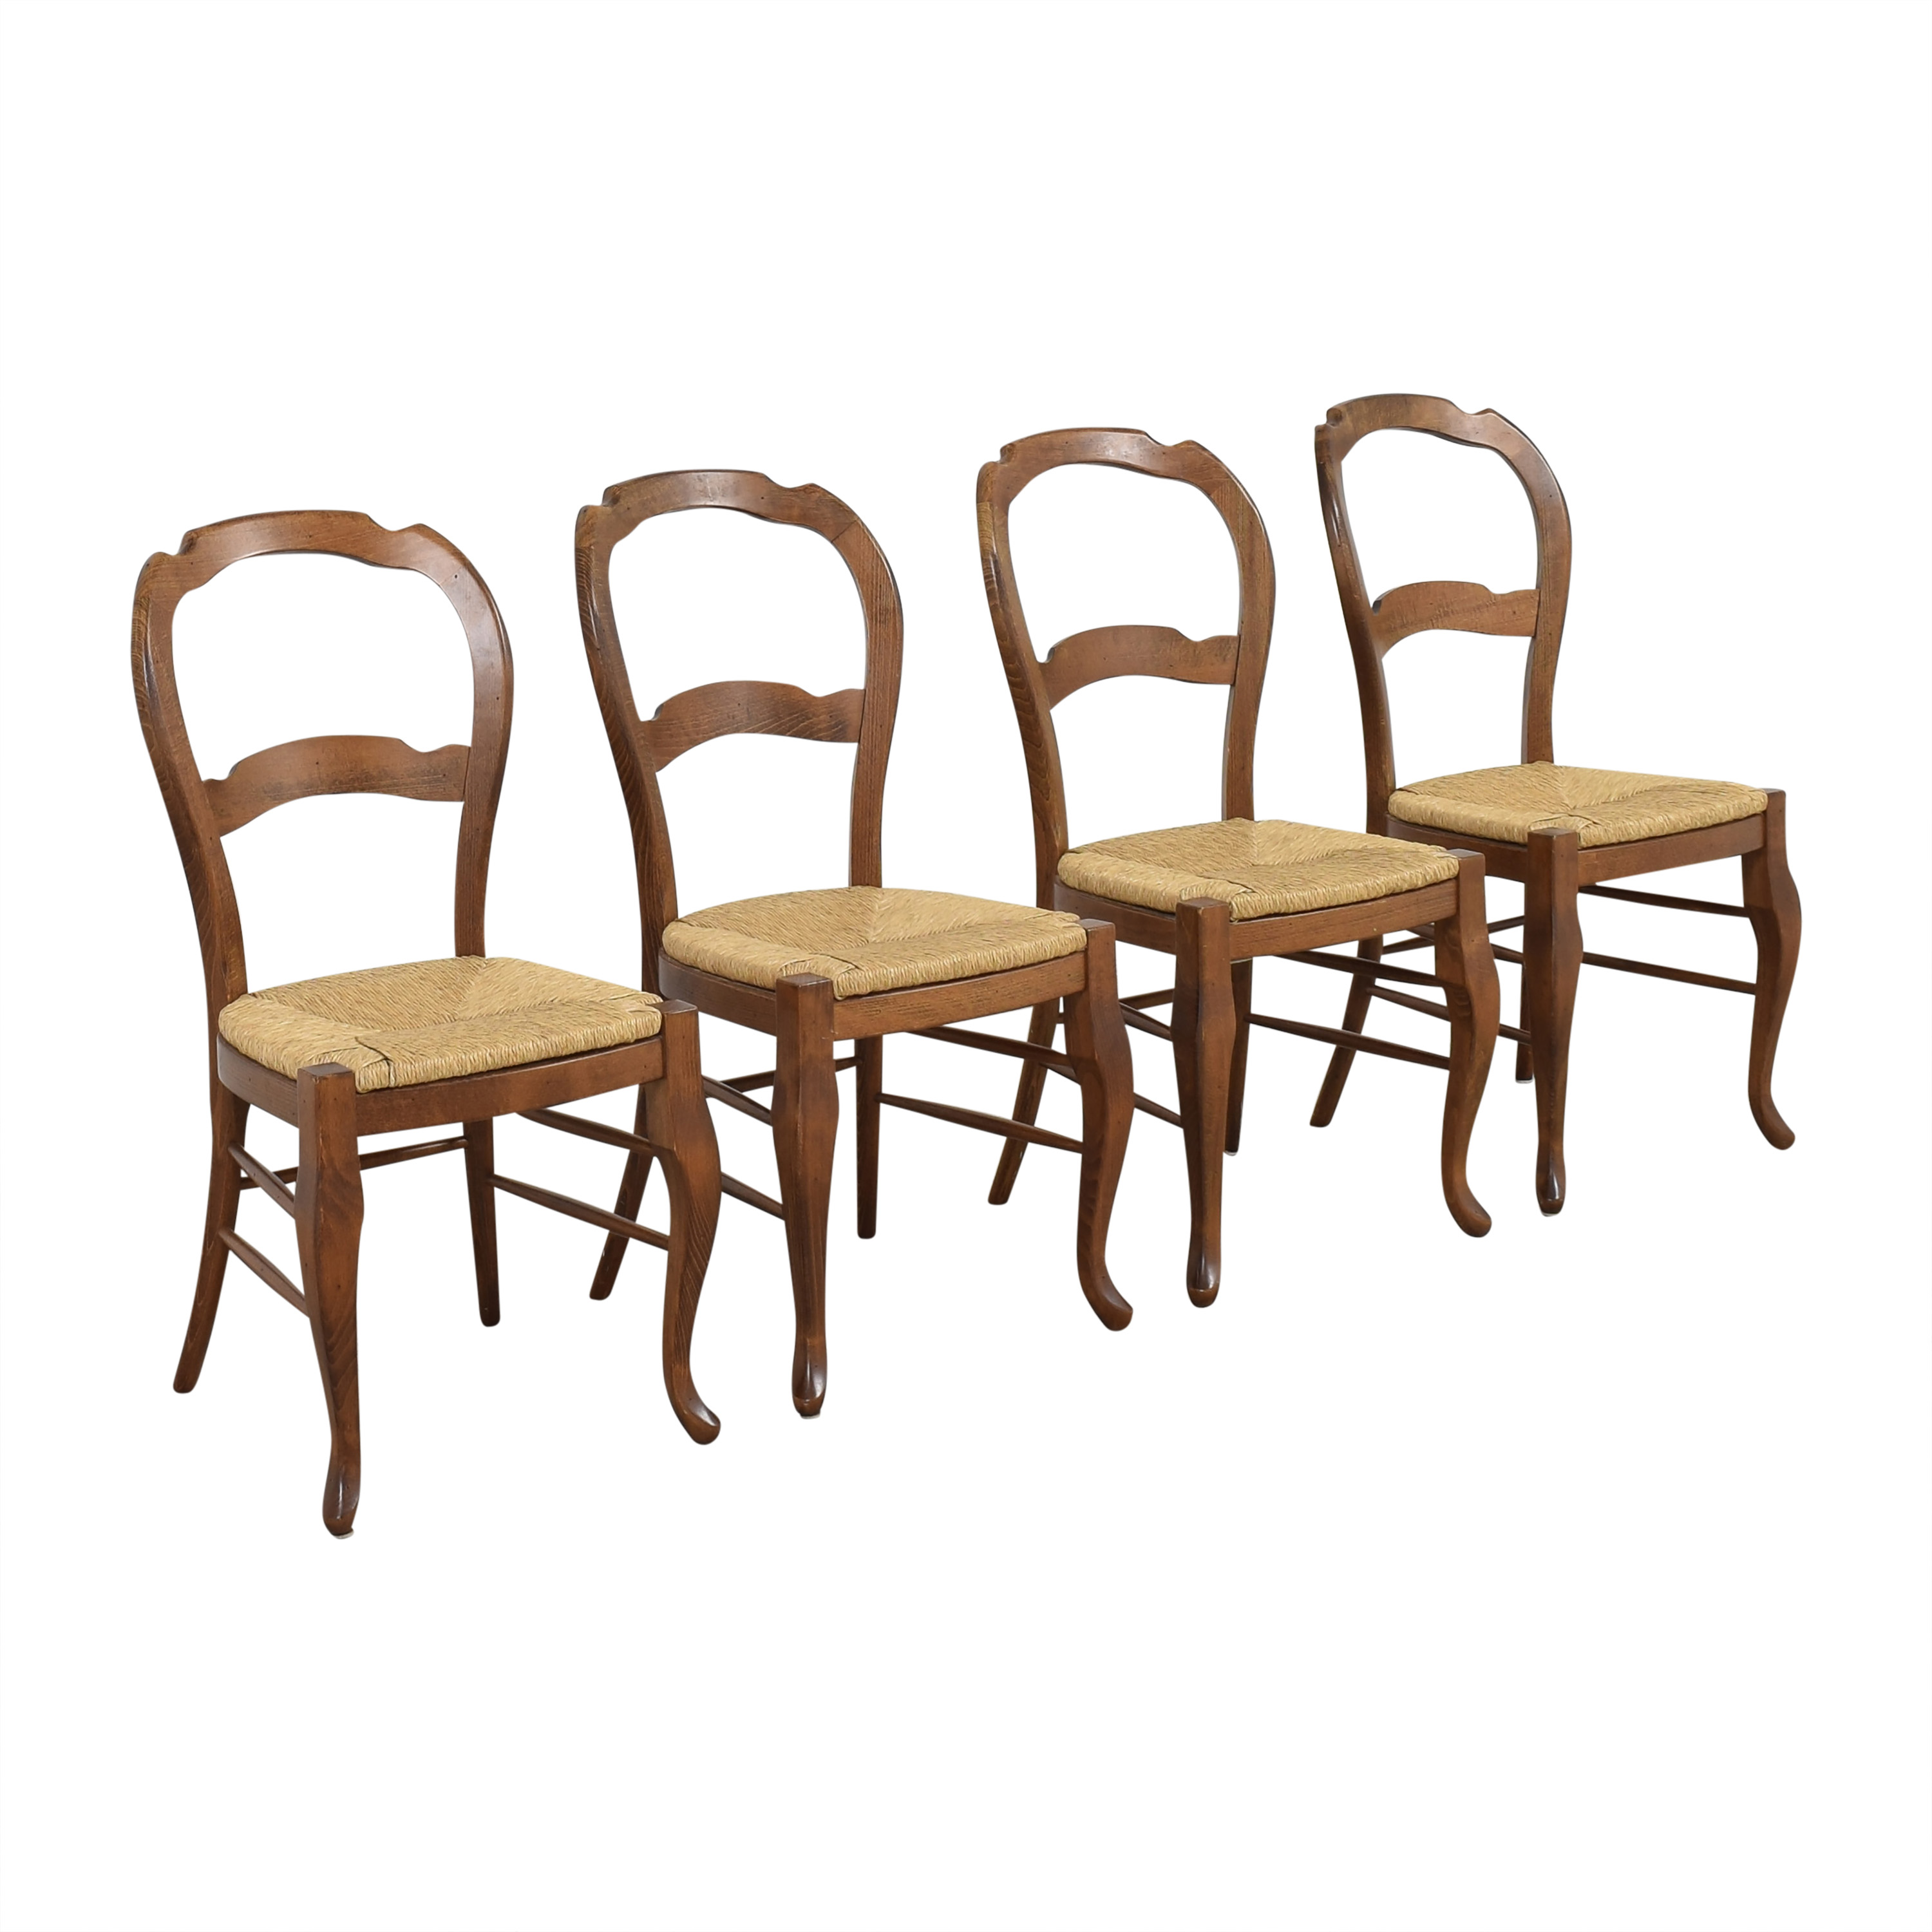 Pottery Barn Pottery Barn Woven Seat Dining Chairs brown